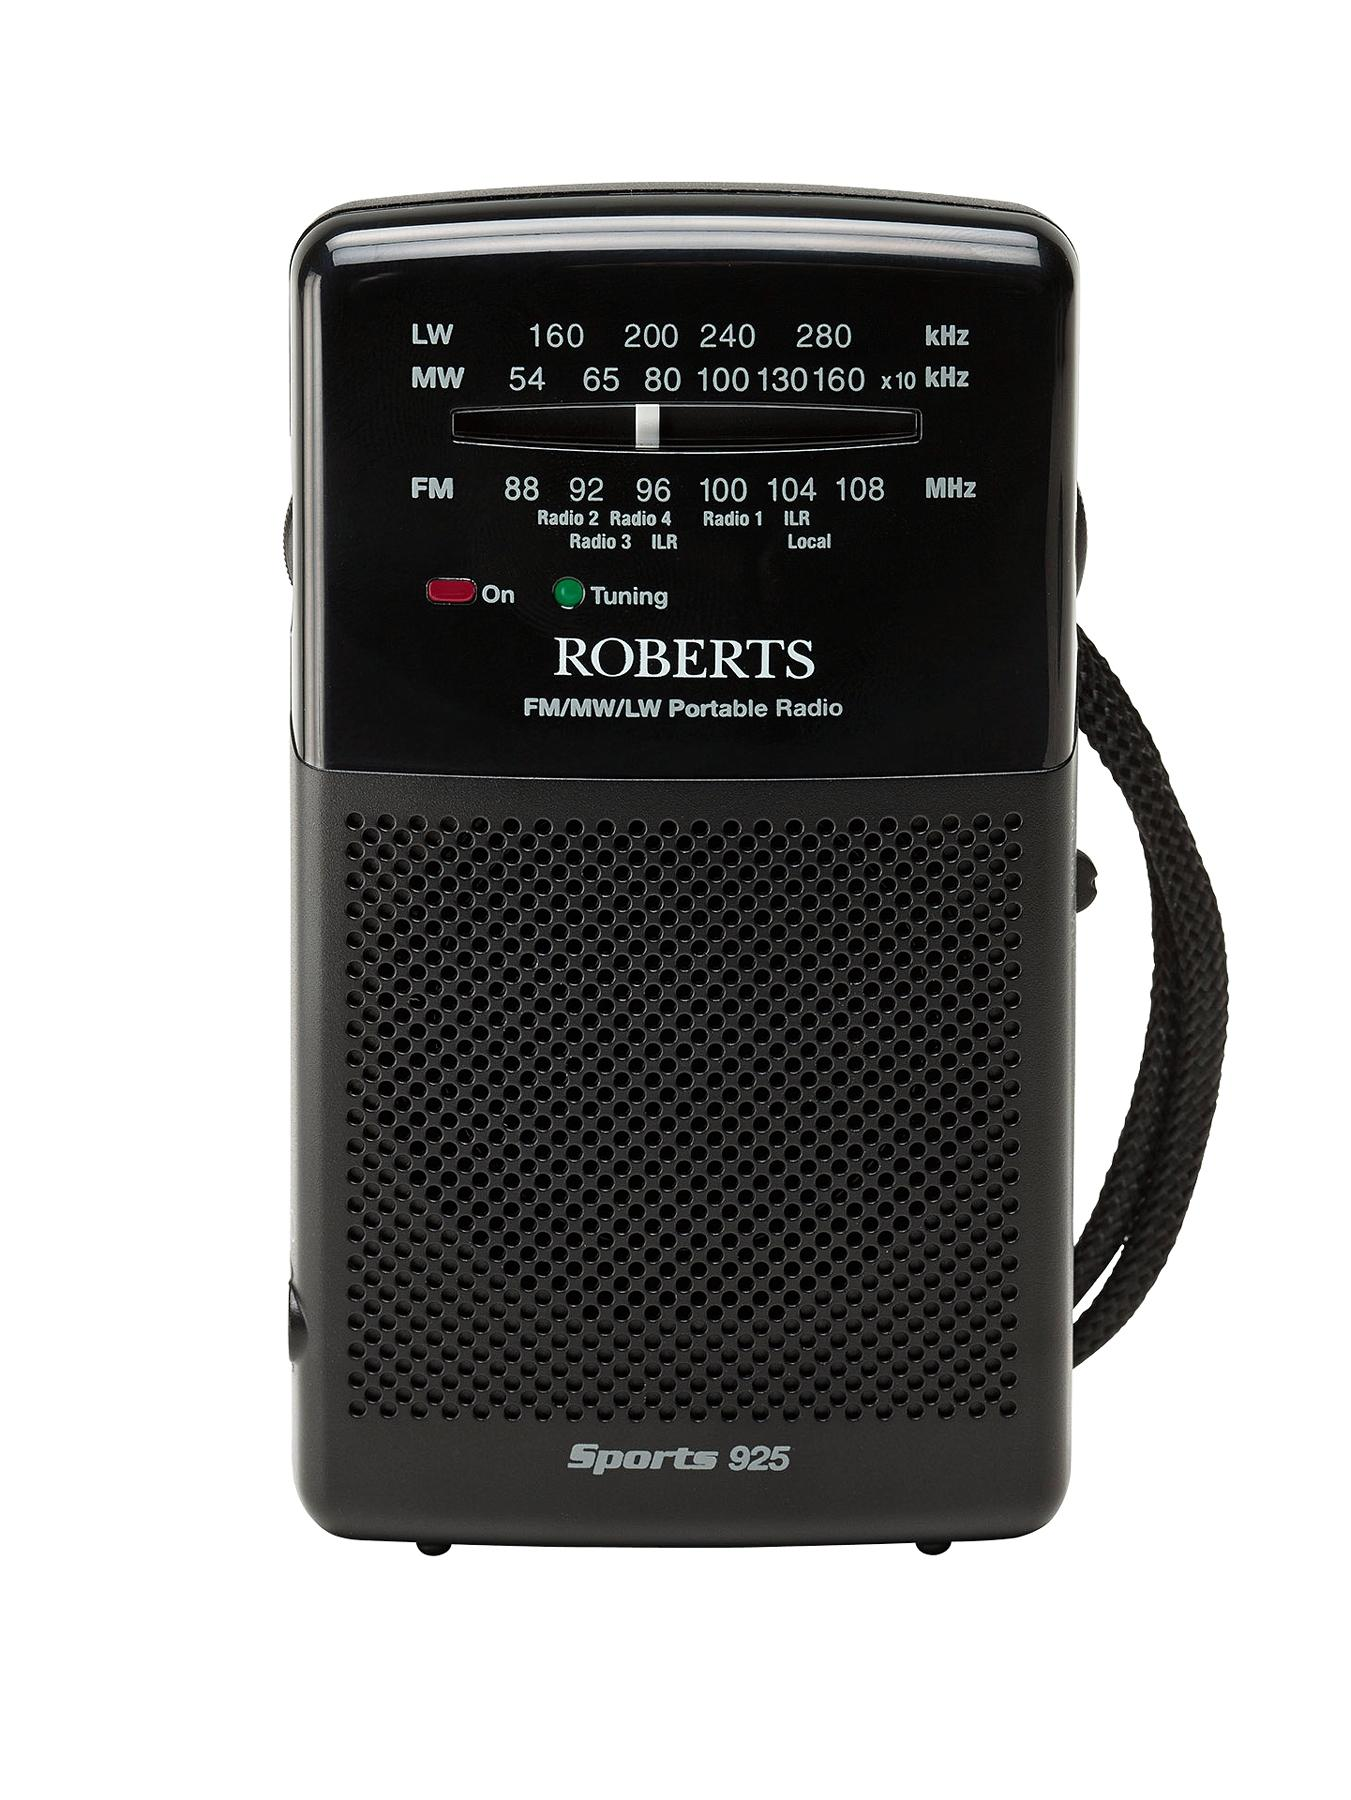 Sports 925 Portable Radio at Littlewoods